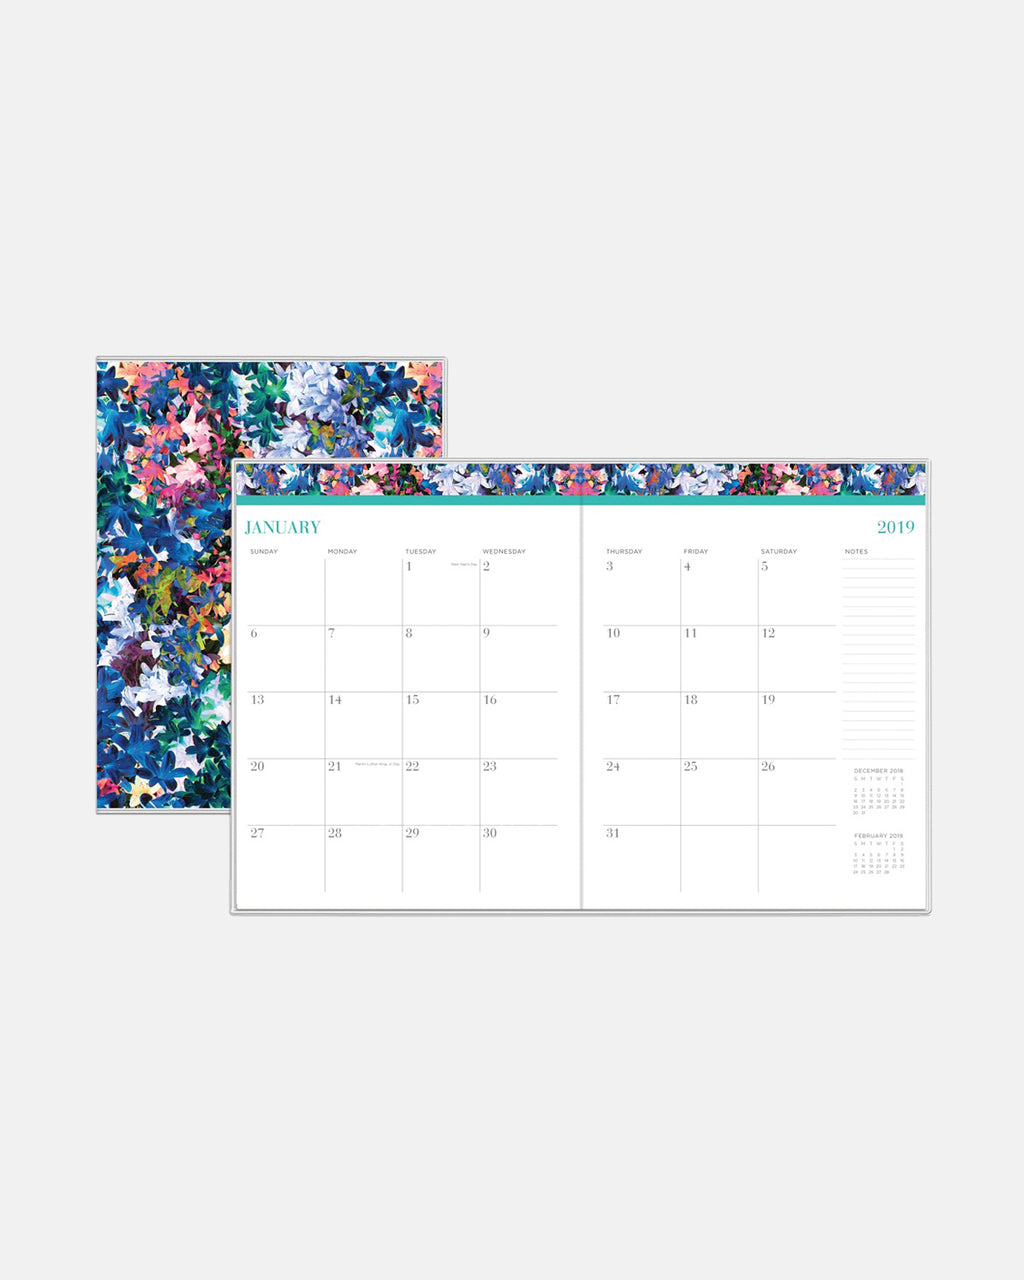 PP10027 - Tye Dye Flowers 2019 Weekly and Monthly Planner - accessories - stationary - 12 months: january to december 2 pages per month with a reference calendar Polypropylene cover with a stapled binding helps protect the pages